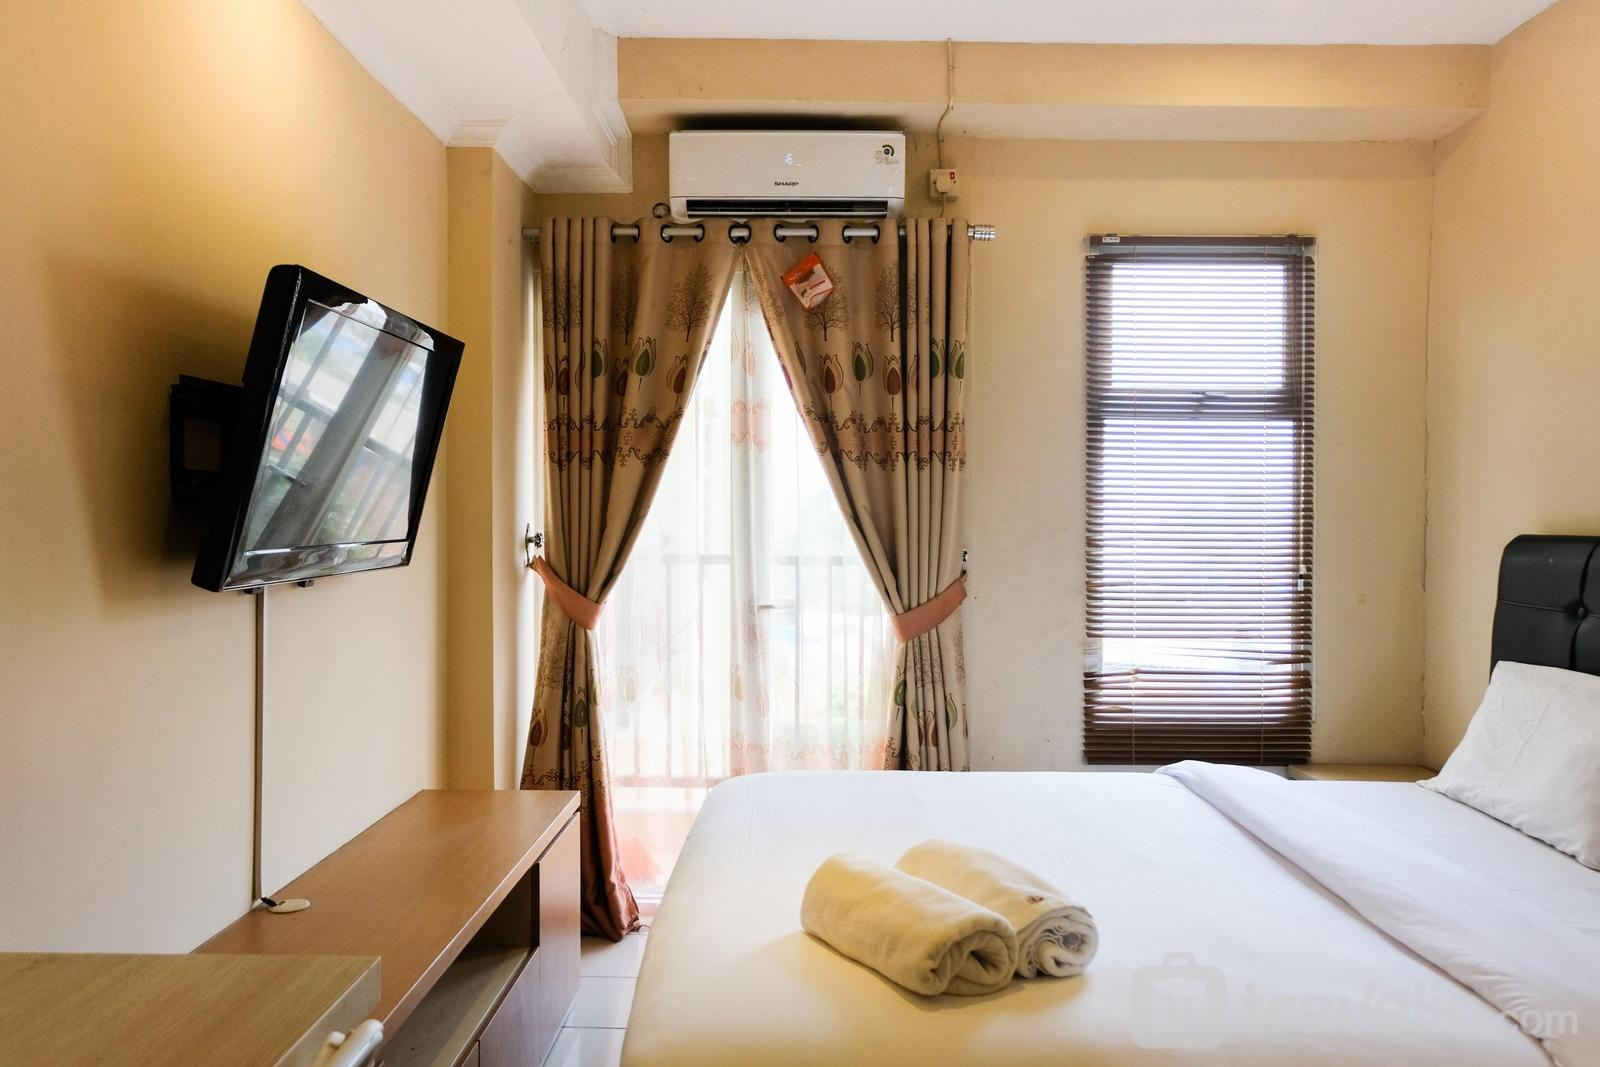 Victoria Square Tangerang - Comfortable and Clean Studio Apartment Victoria Square By Travelio